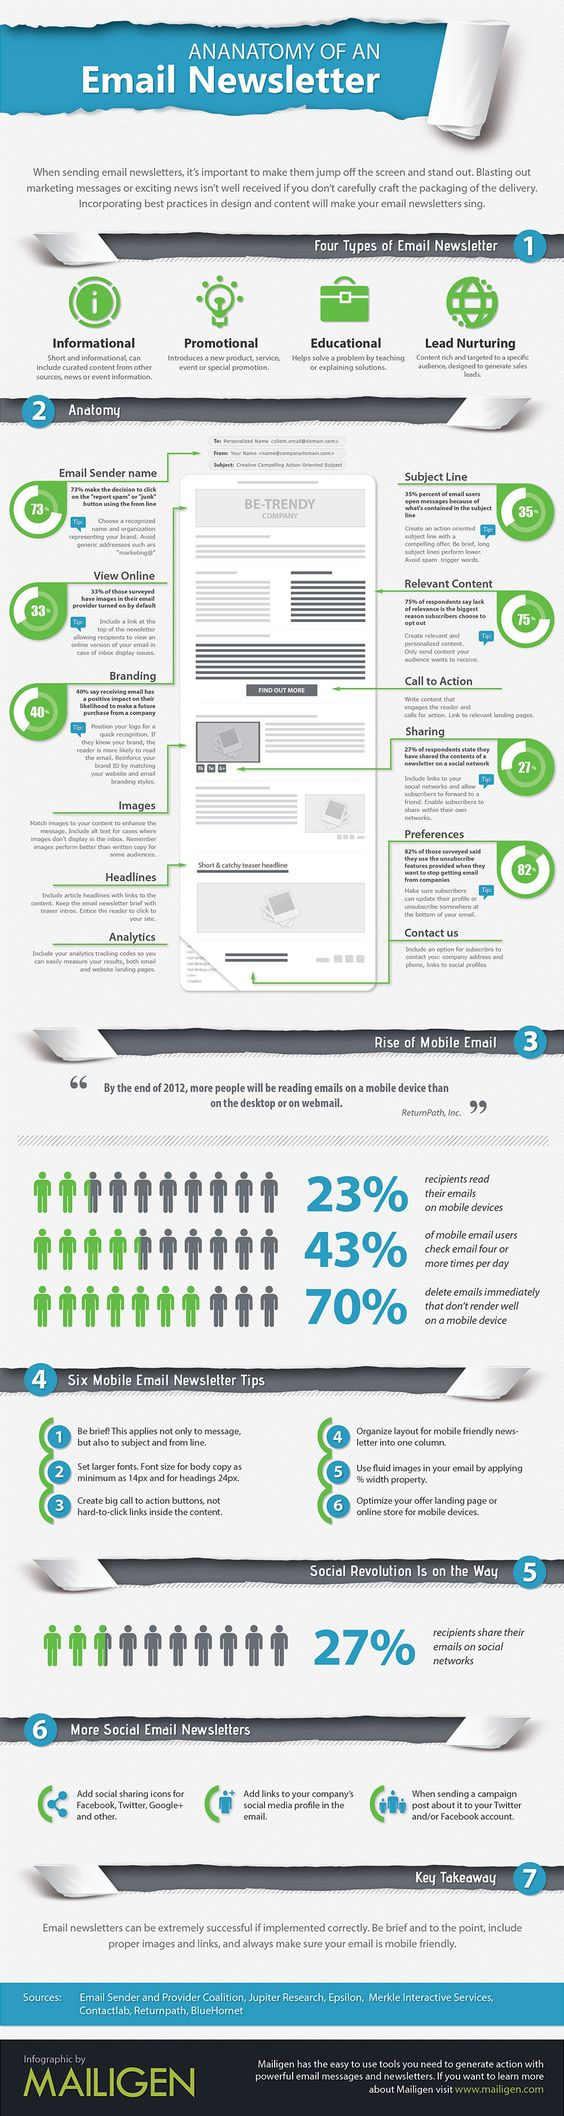 #INFOGRAPHIC: THE ANATOMY OF AN EMAIL NEWSLETTER – IS YOUR EMAIL READY TO SEND?